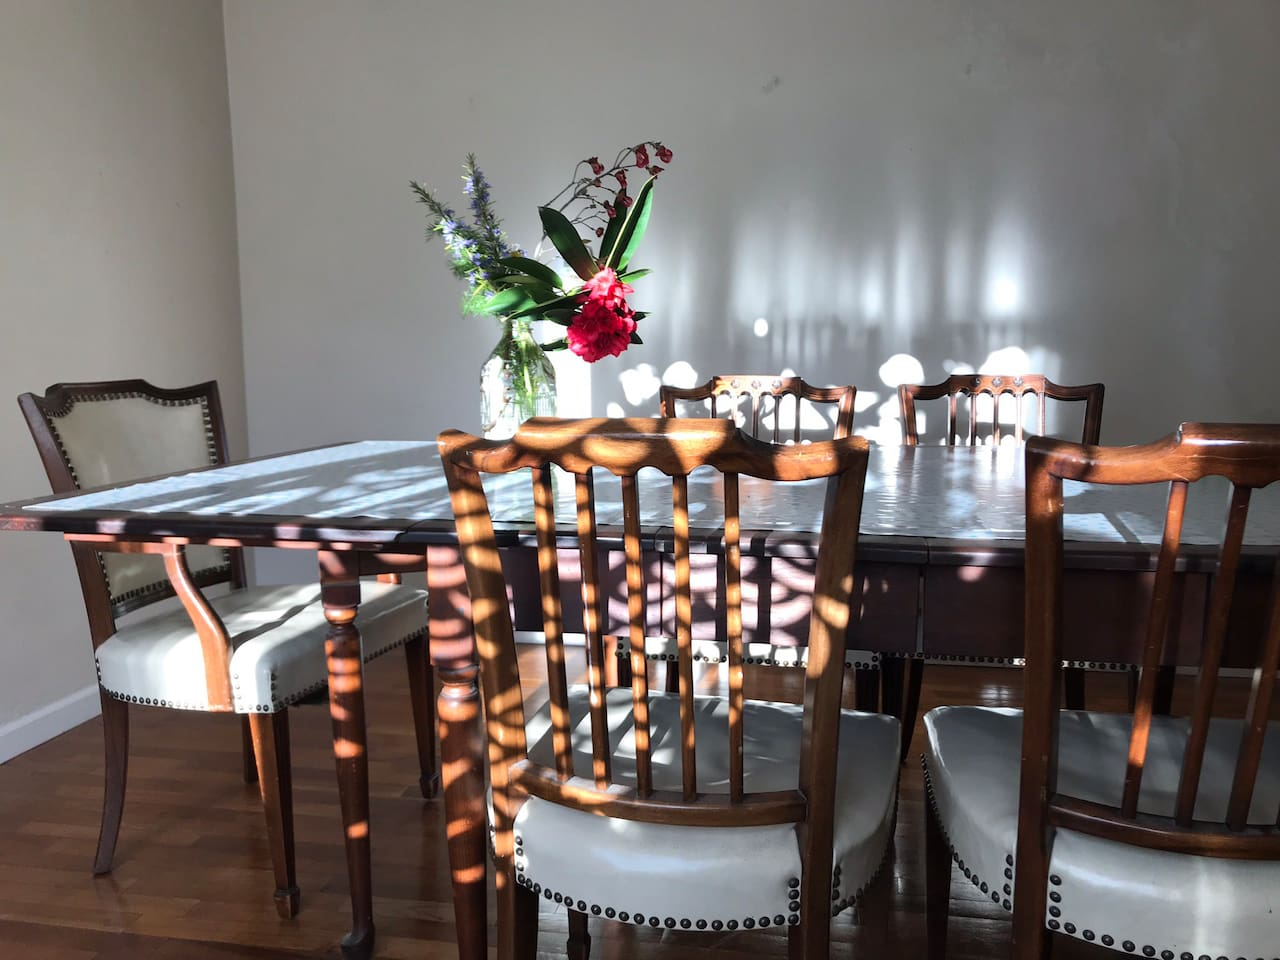 late afternoon in the dining room; the the table seats 10 comfortably